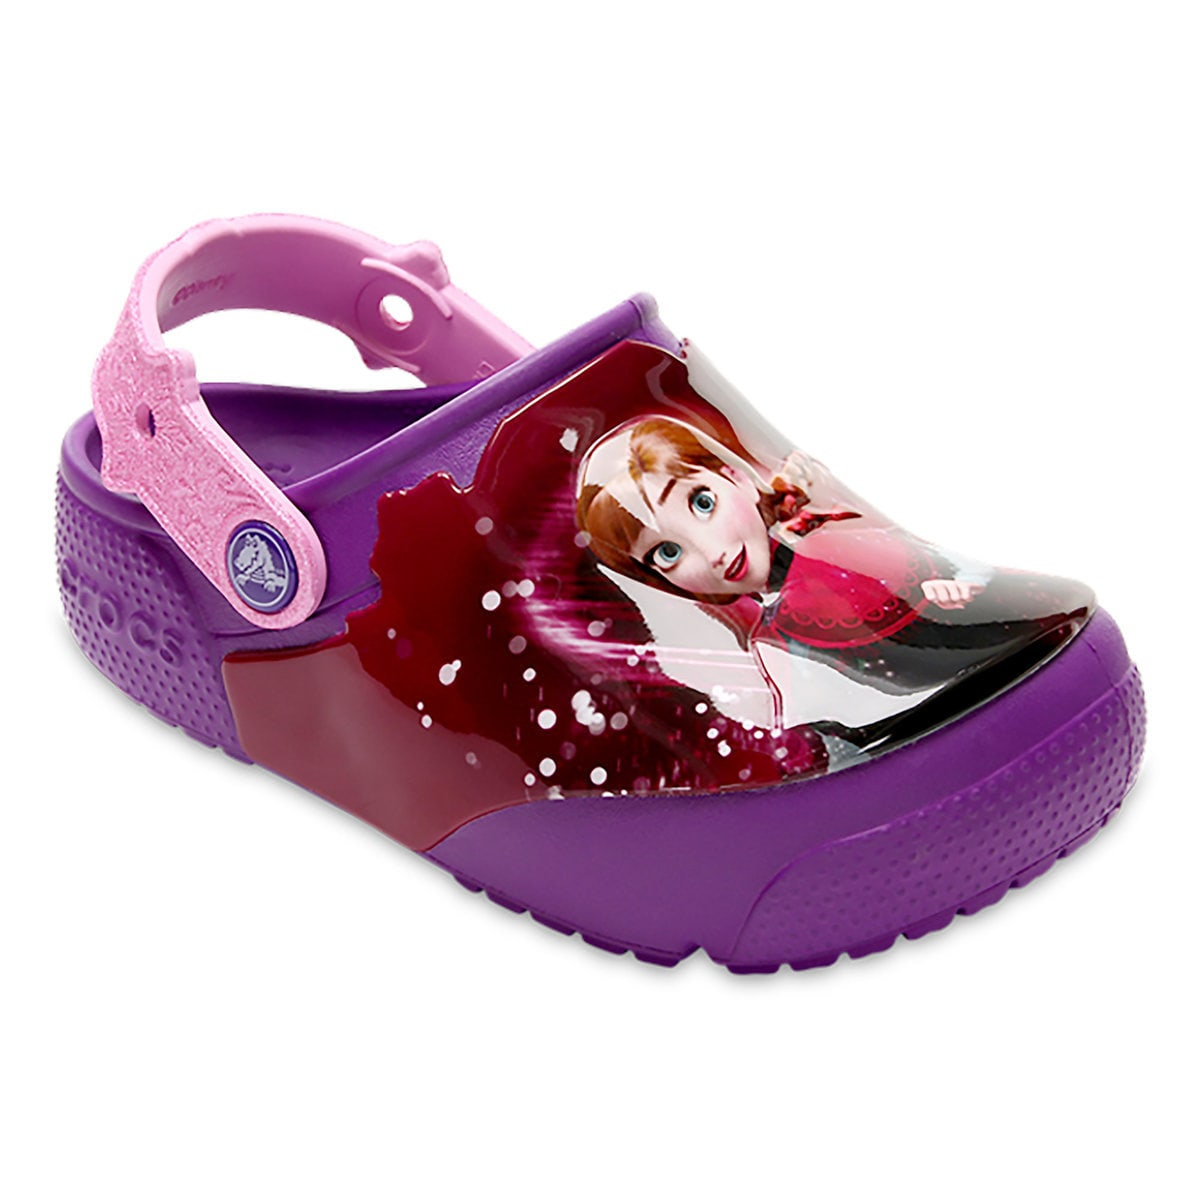 e39f9e23d0 Product Image of Anna and Elsa Crocs™ Light-Up Clogs for Girls   1